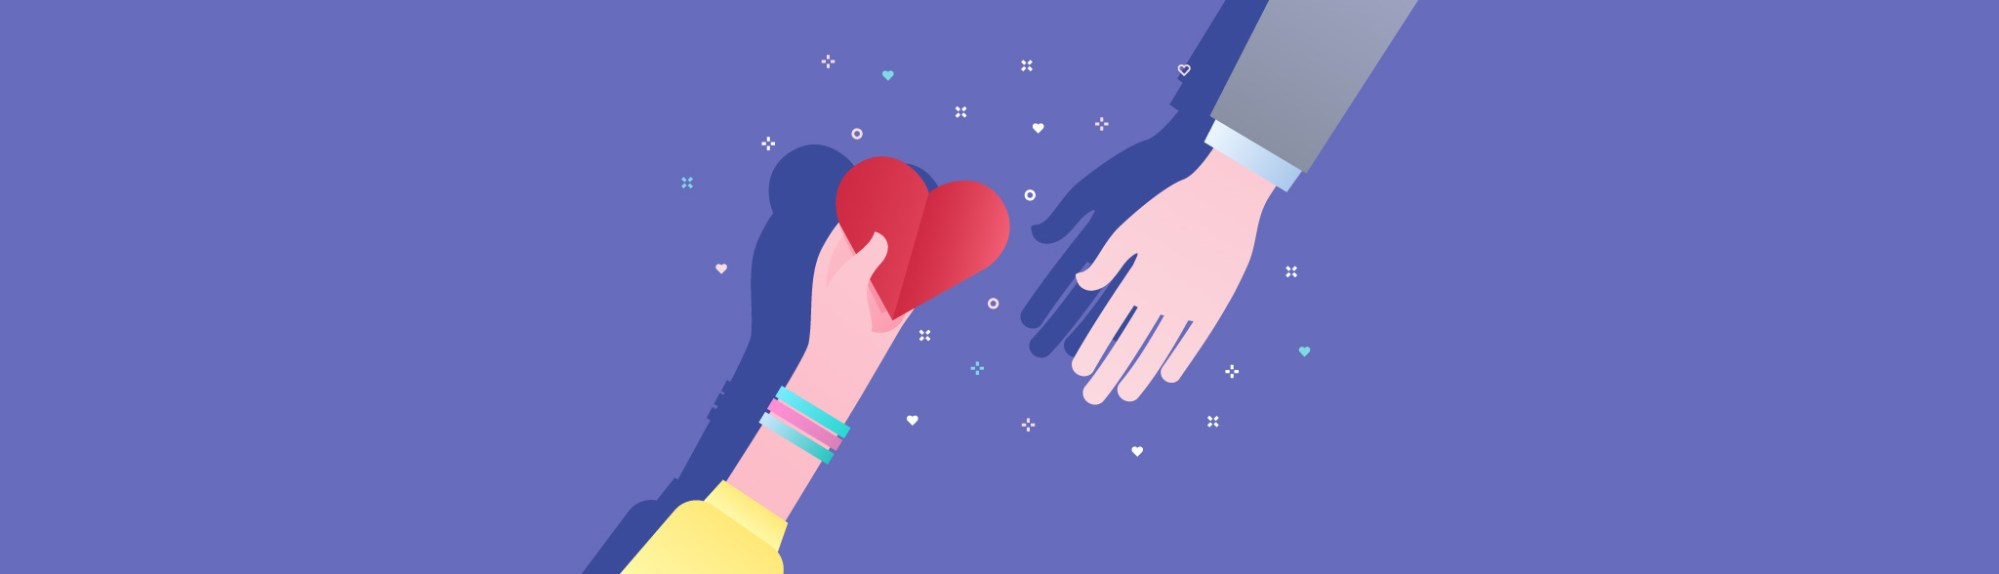 hand holding heart and reaching out to another hand